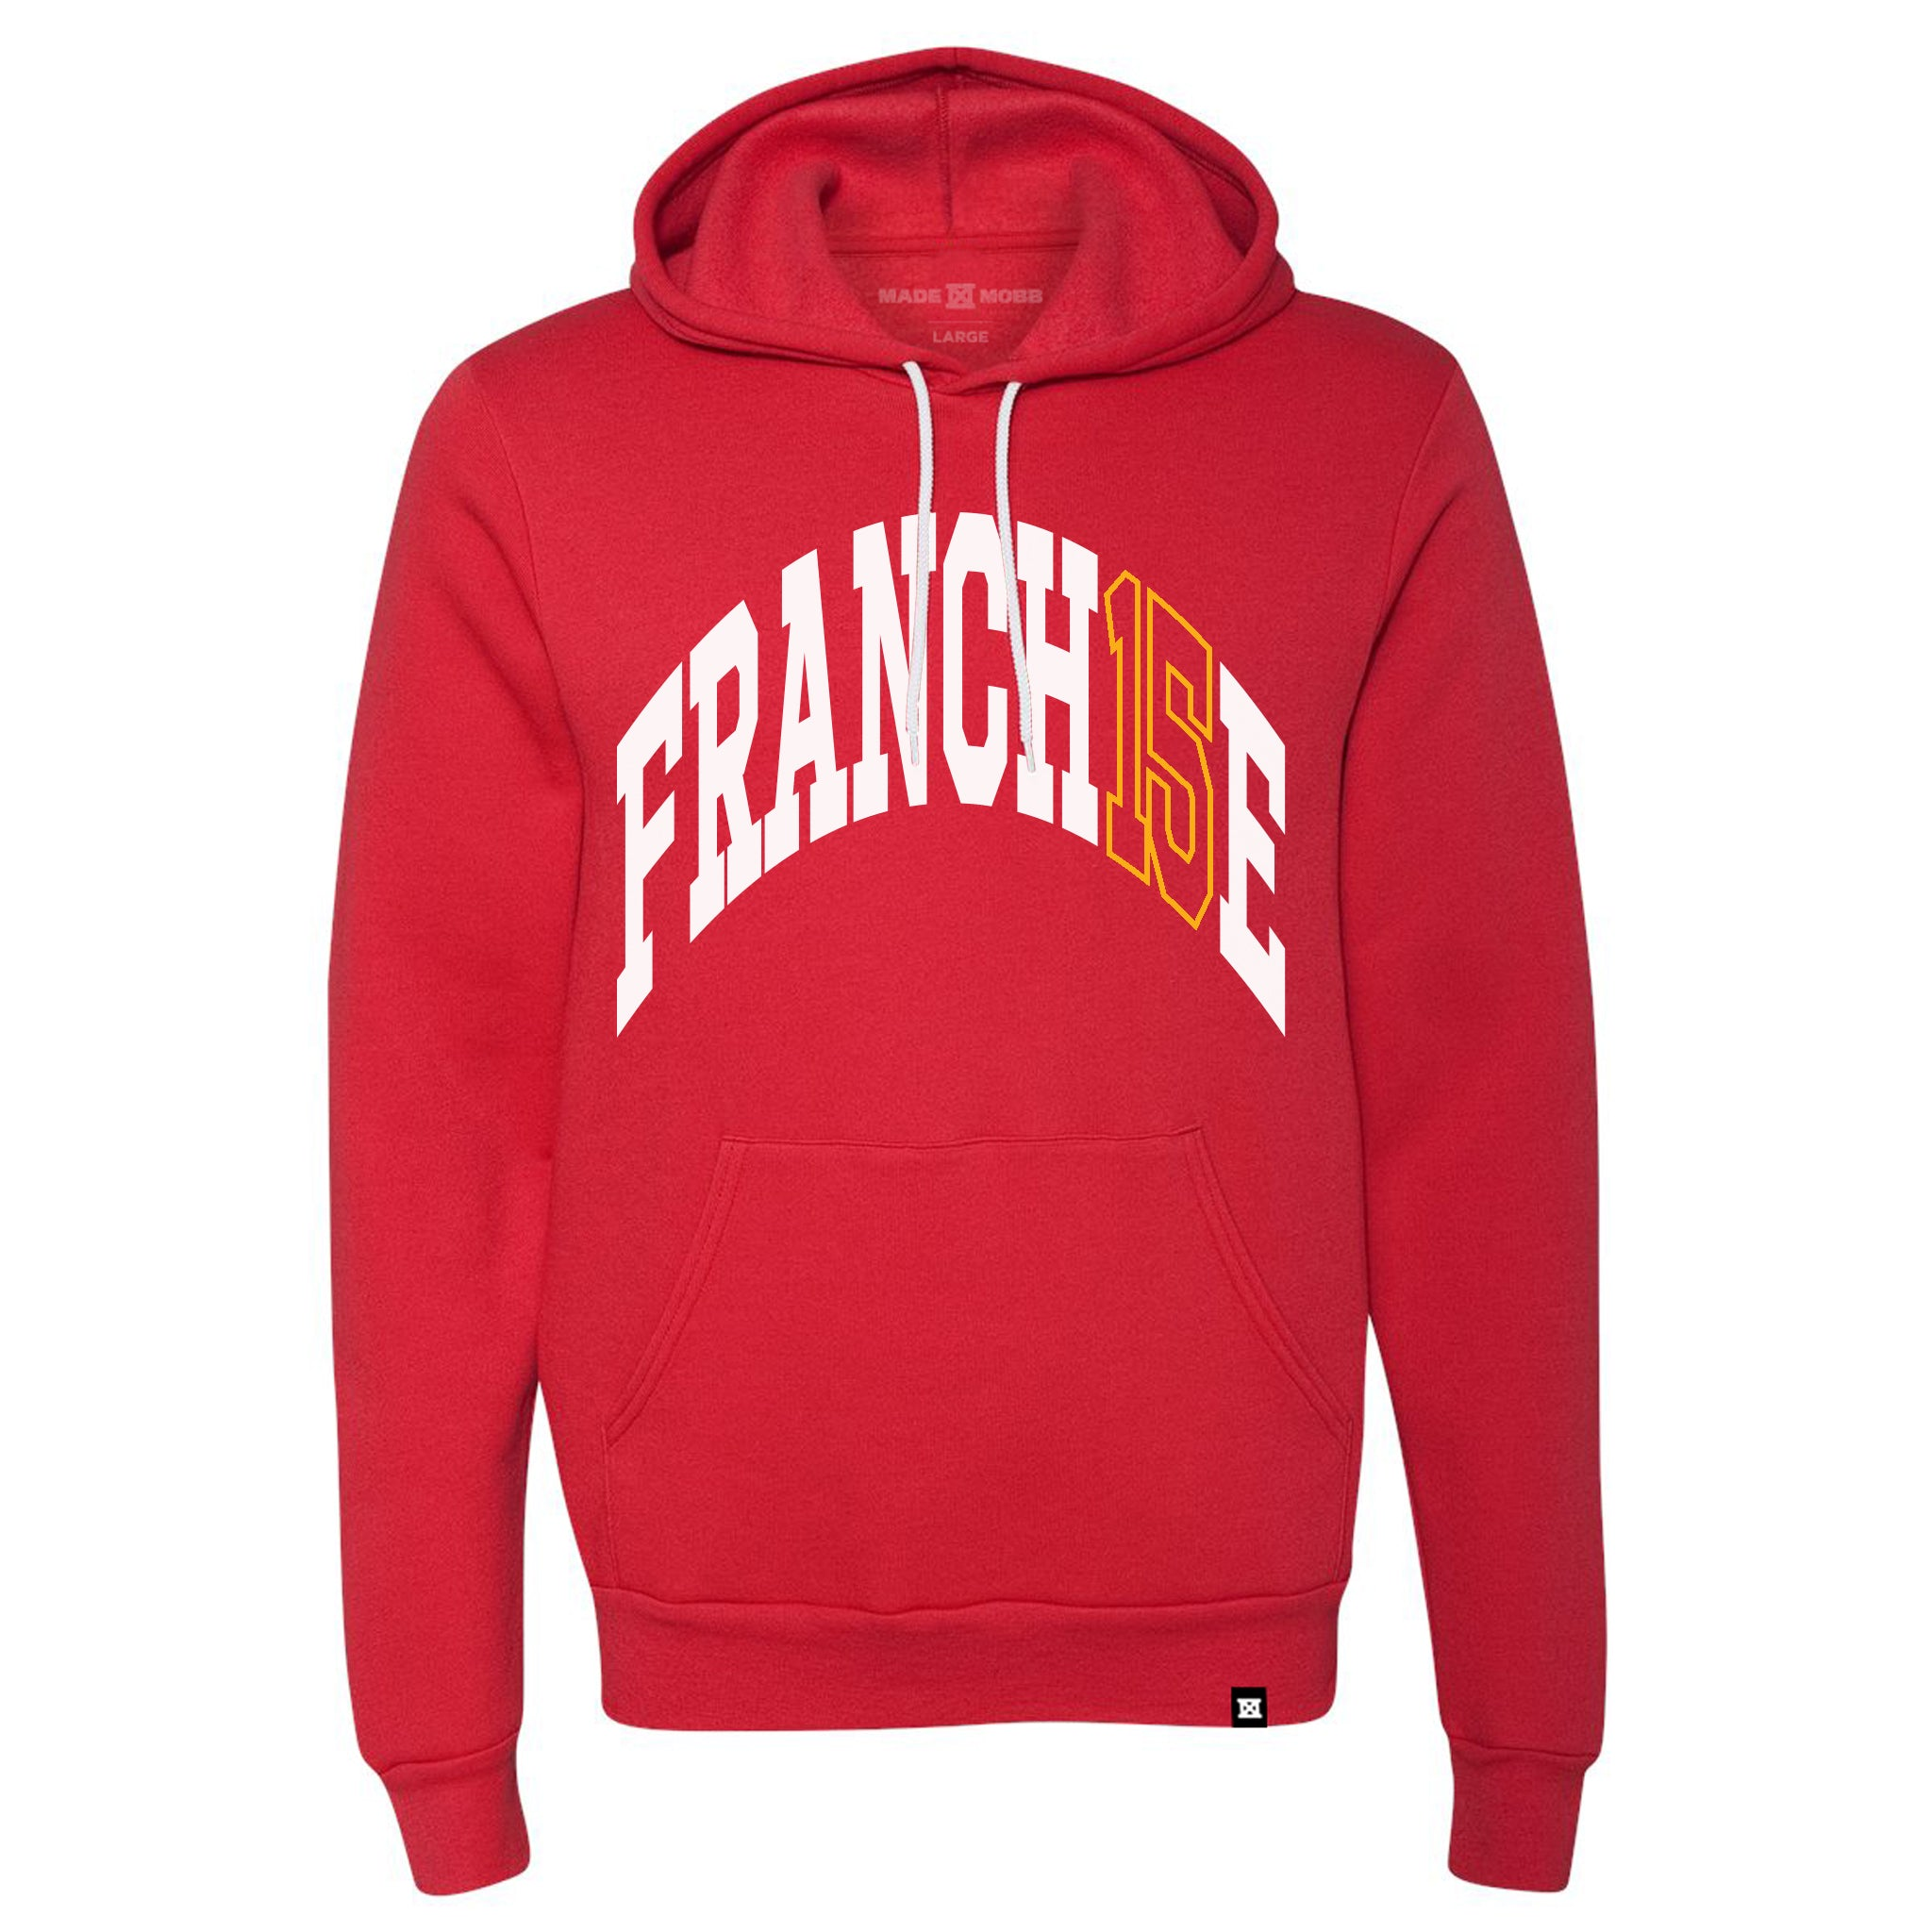 FRANCH15E Hoodie - Red